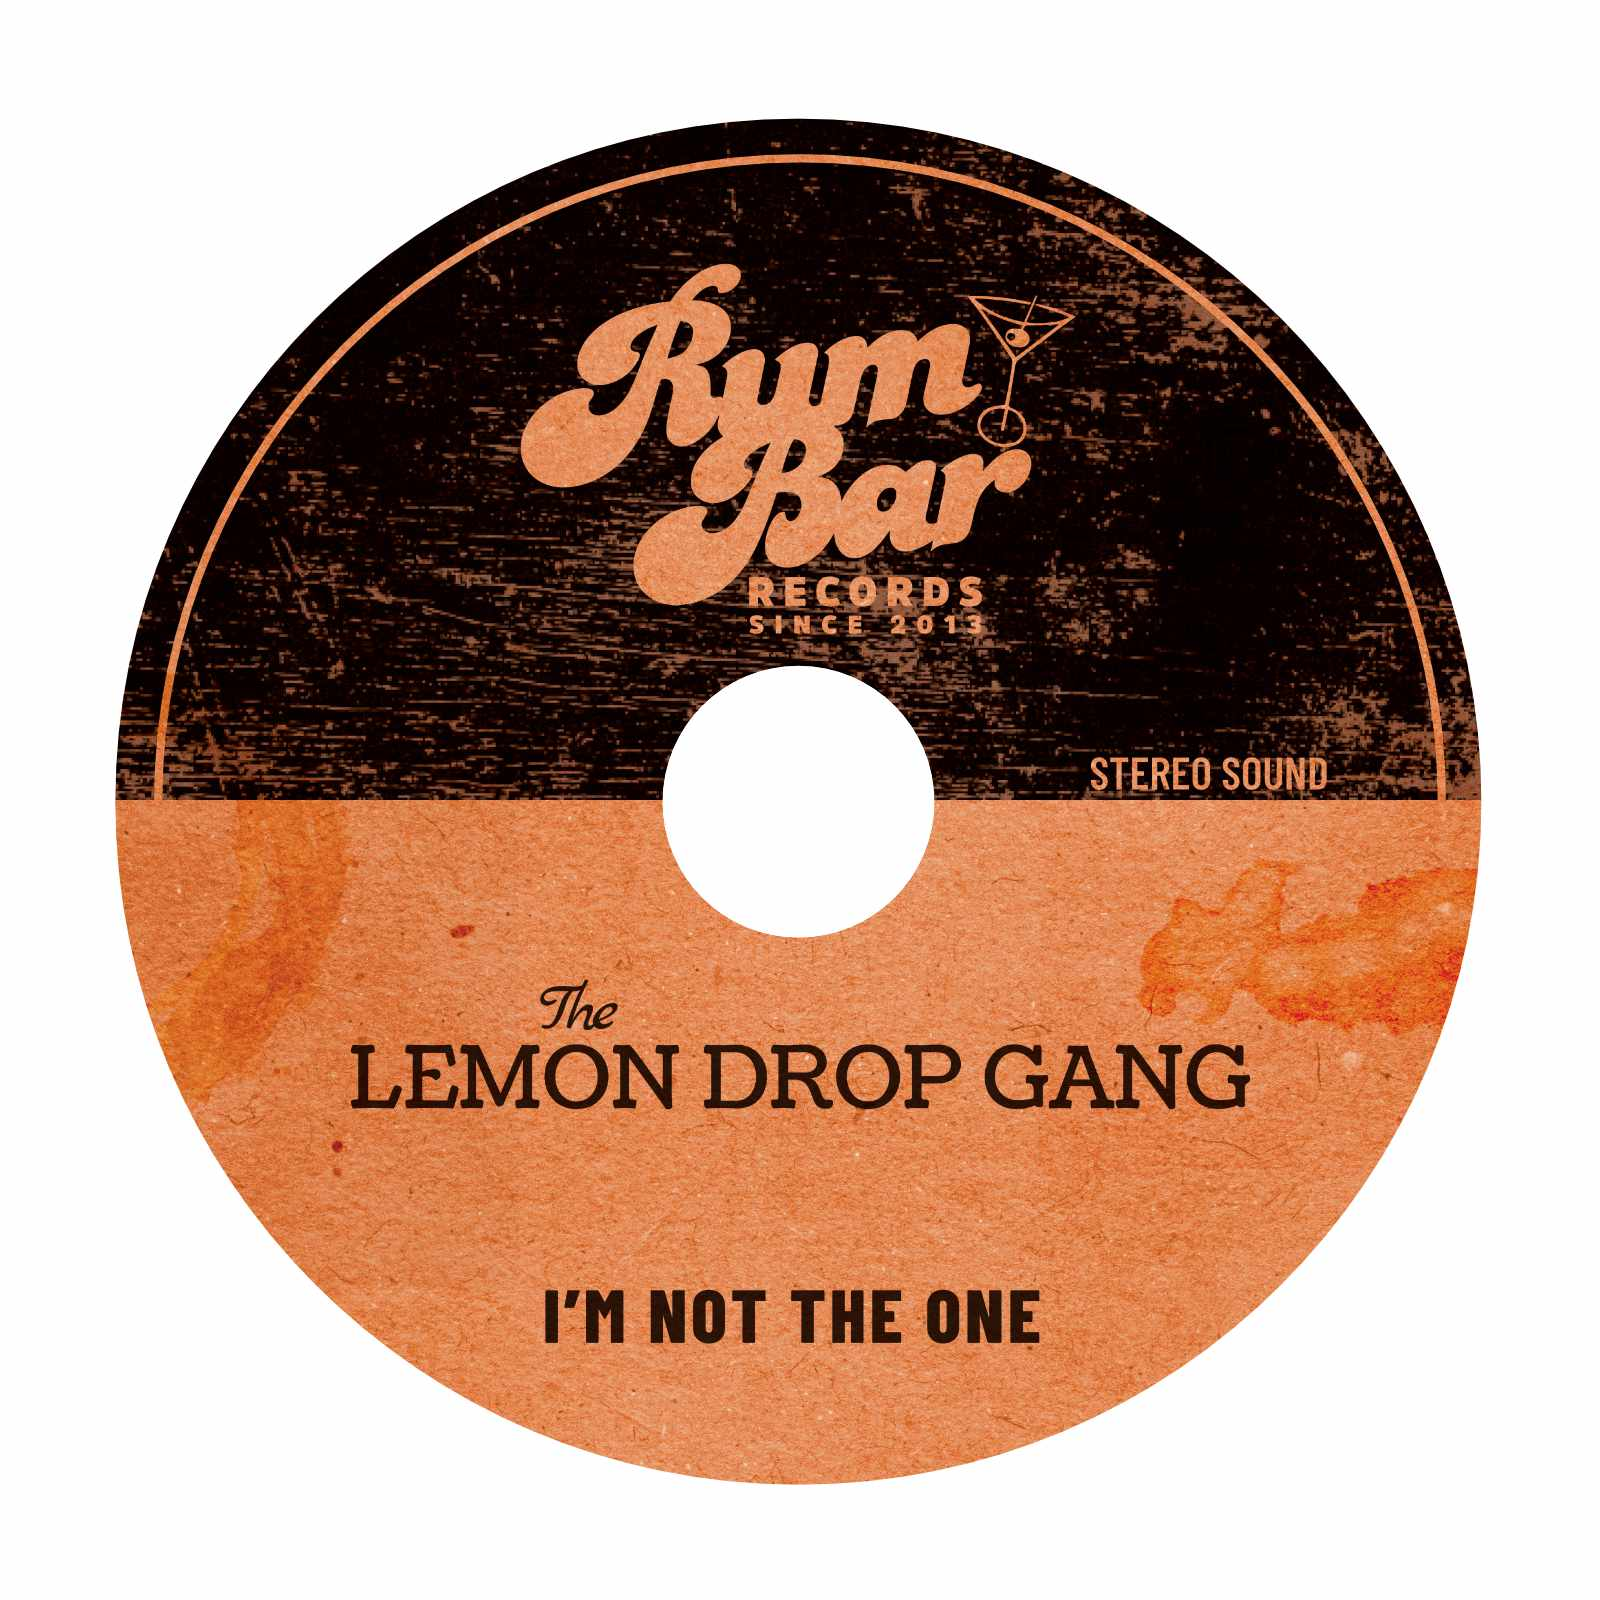 The Lemon Drop Gang CD Label